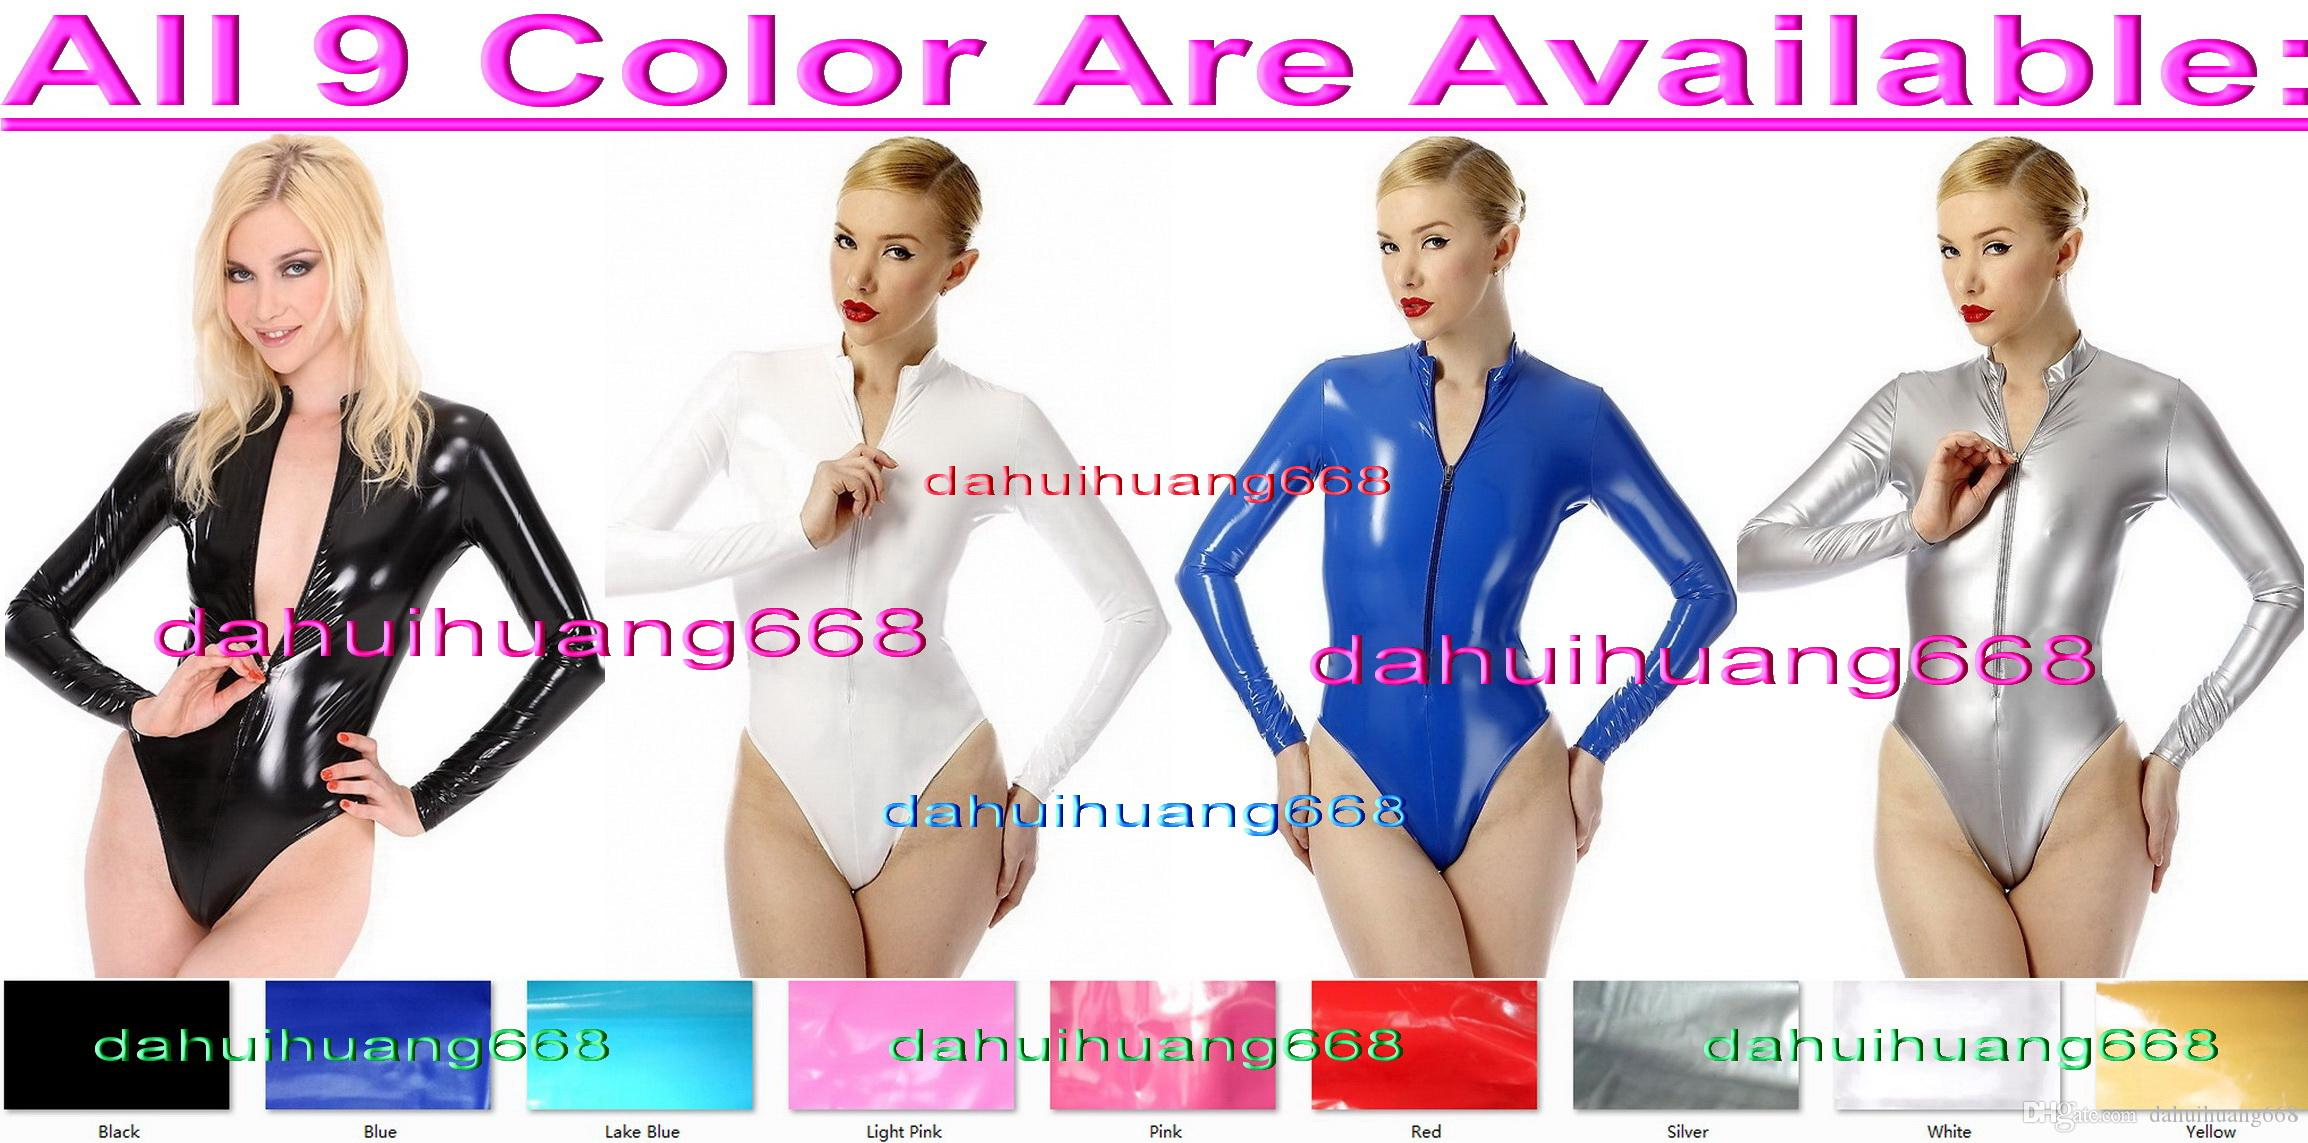 Sexy Shont PVC Body Suit Costumes Sexy 9 Color Shiny PVC Short Suit Catsuit Costumes Unisex Short Bodysuit Costumes With Front Zipper DH220